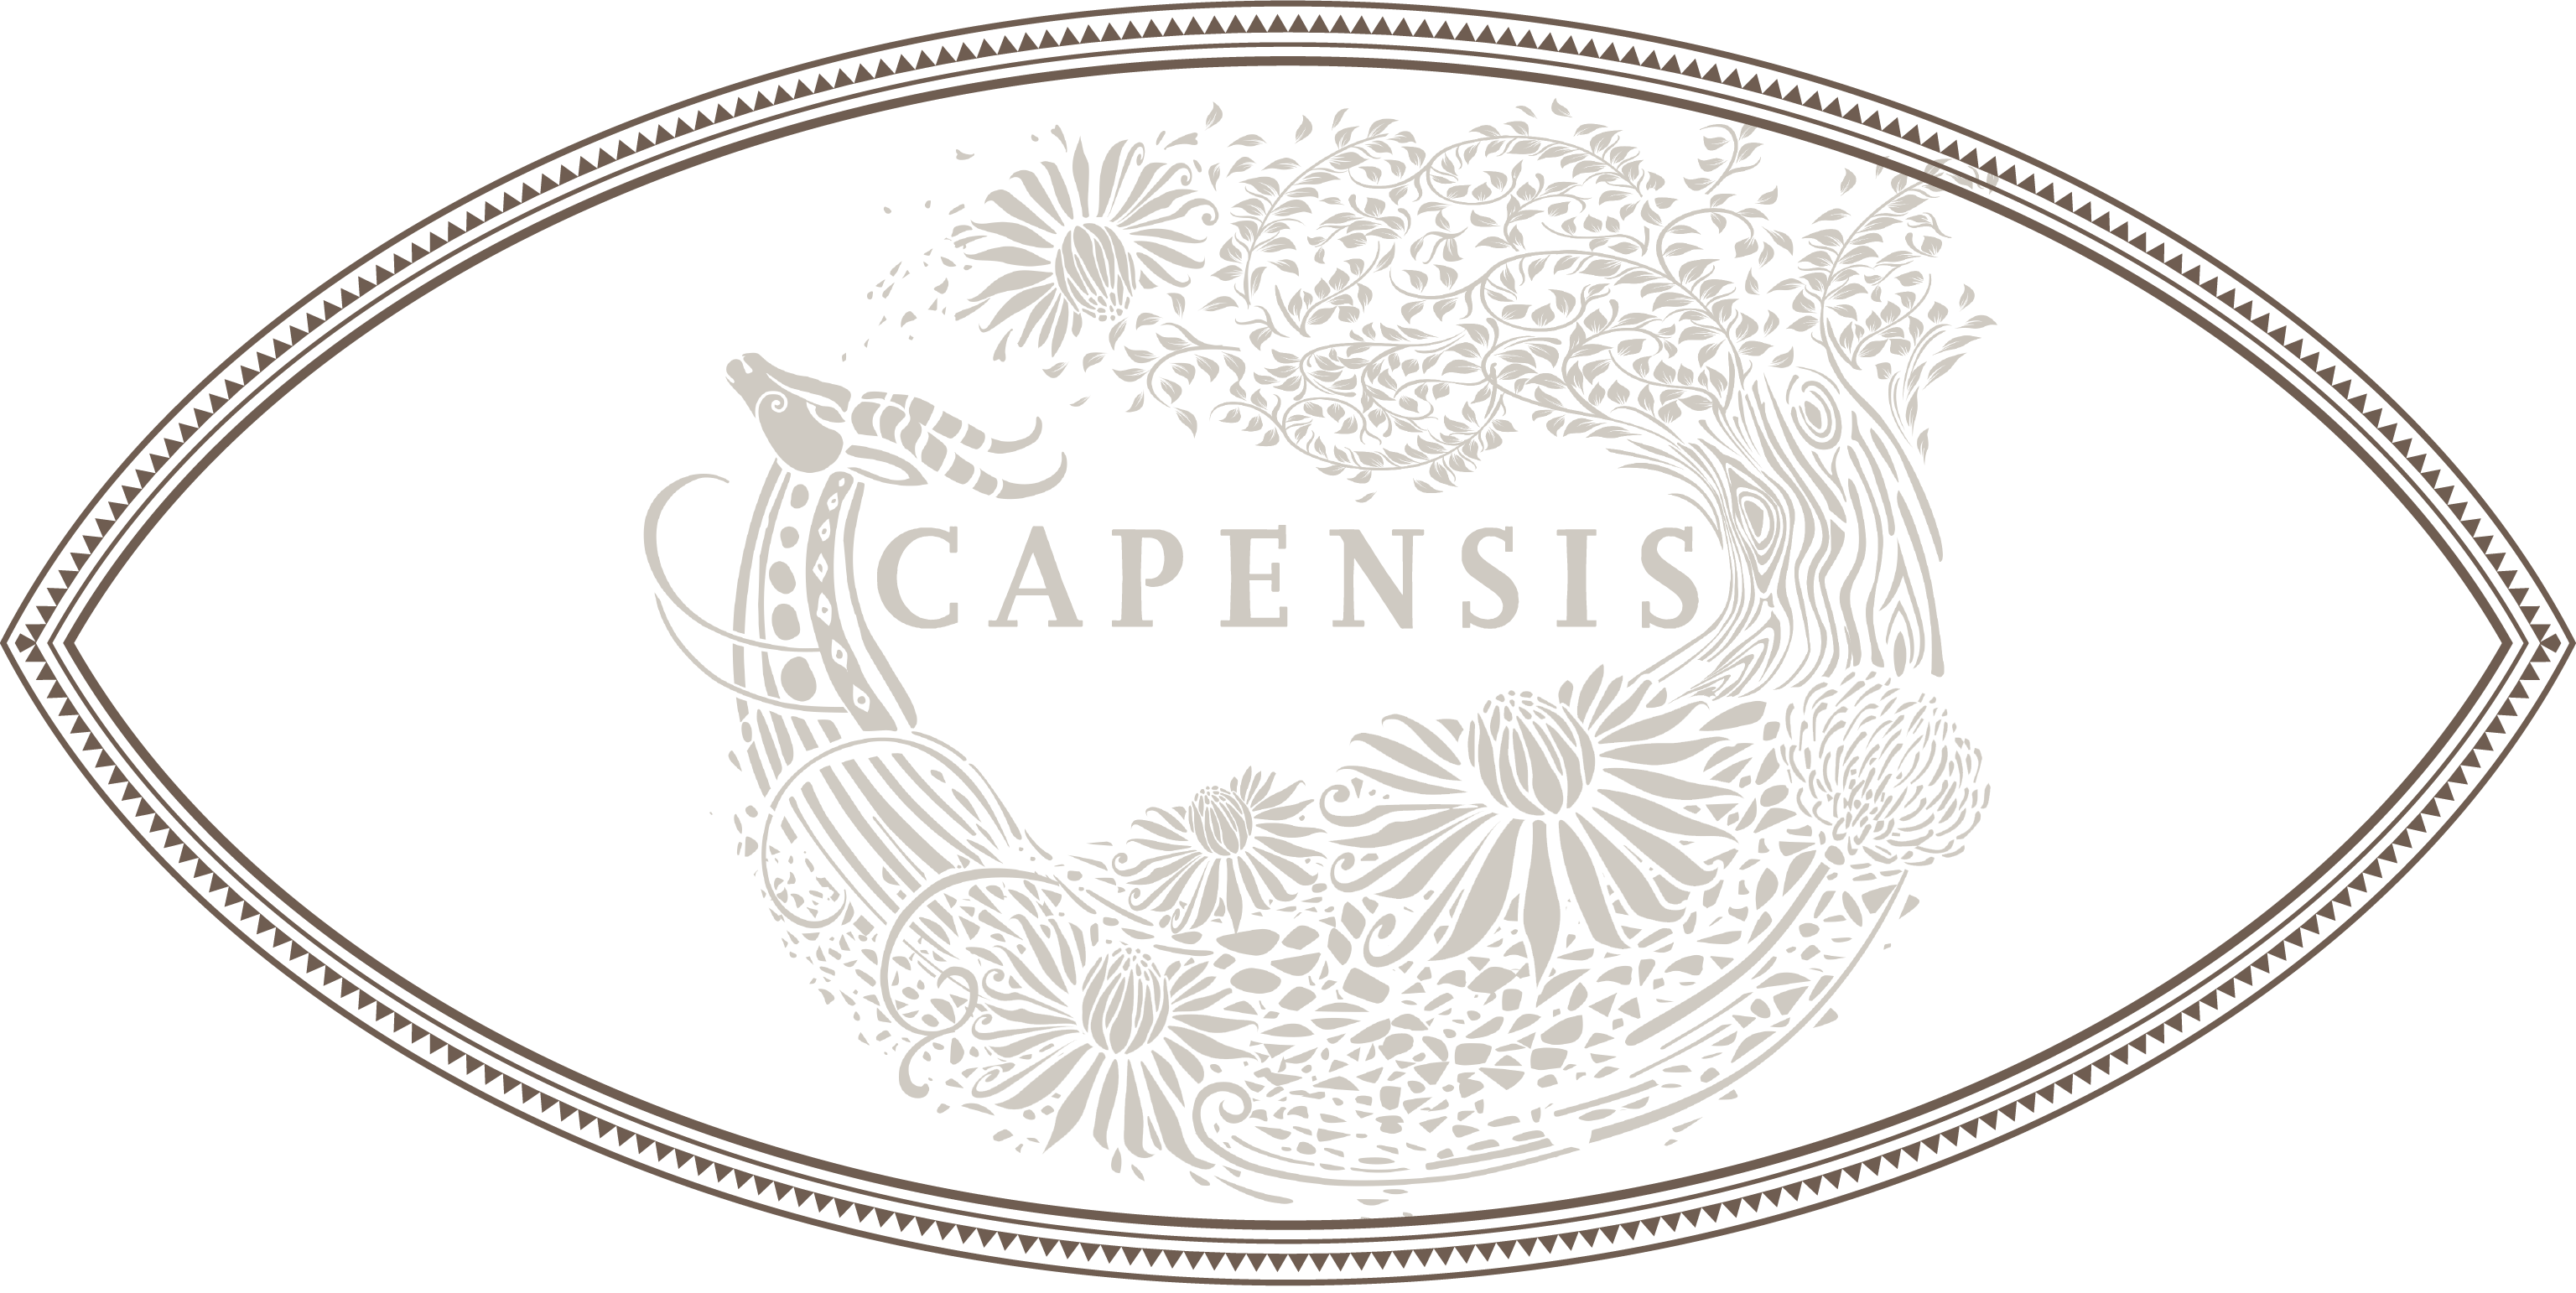 Capensis label with Zulu Shield ighlighted